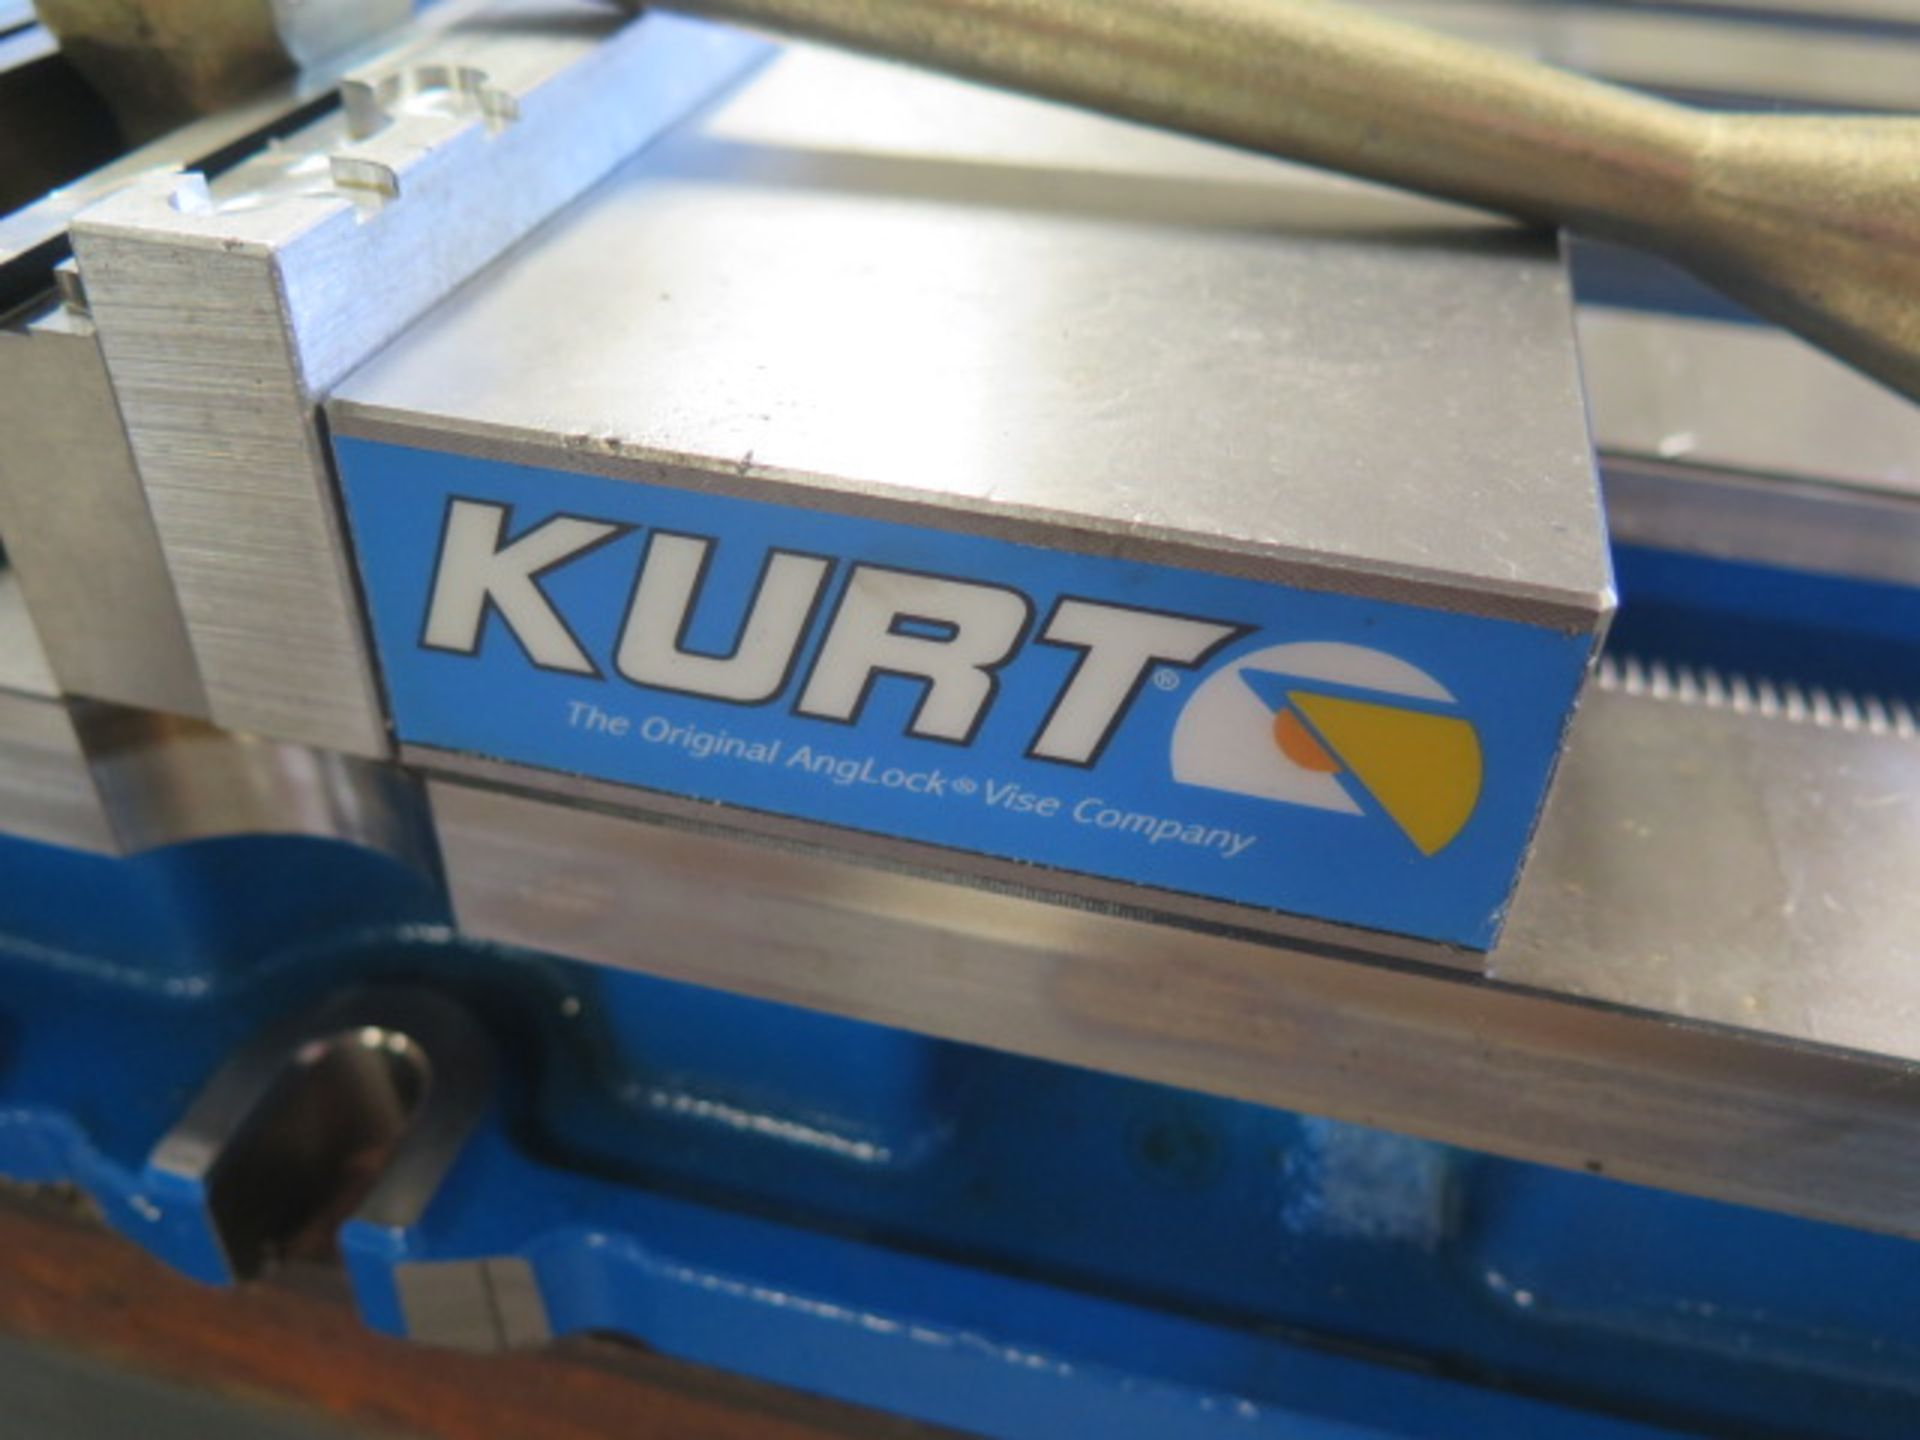 "Kurt DX6 6"" Angle Lock Vise (SOLD AS-IS - NO WARRANTY) - Image 3 of 4"